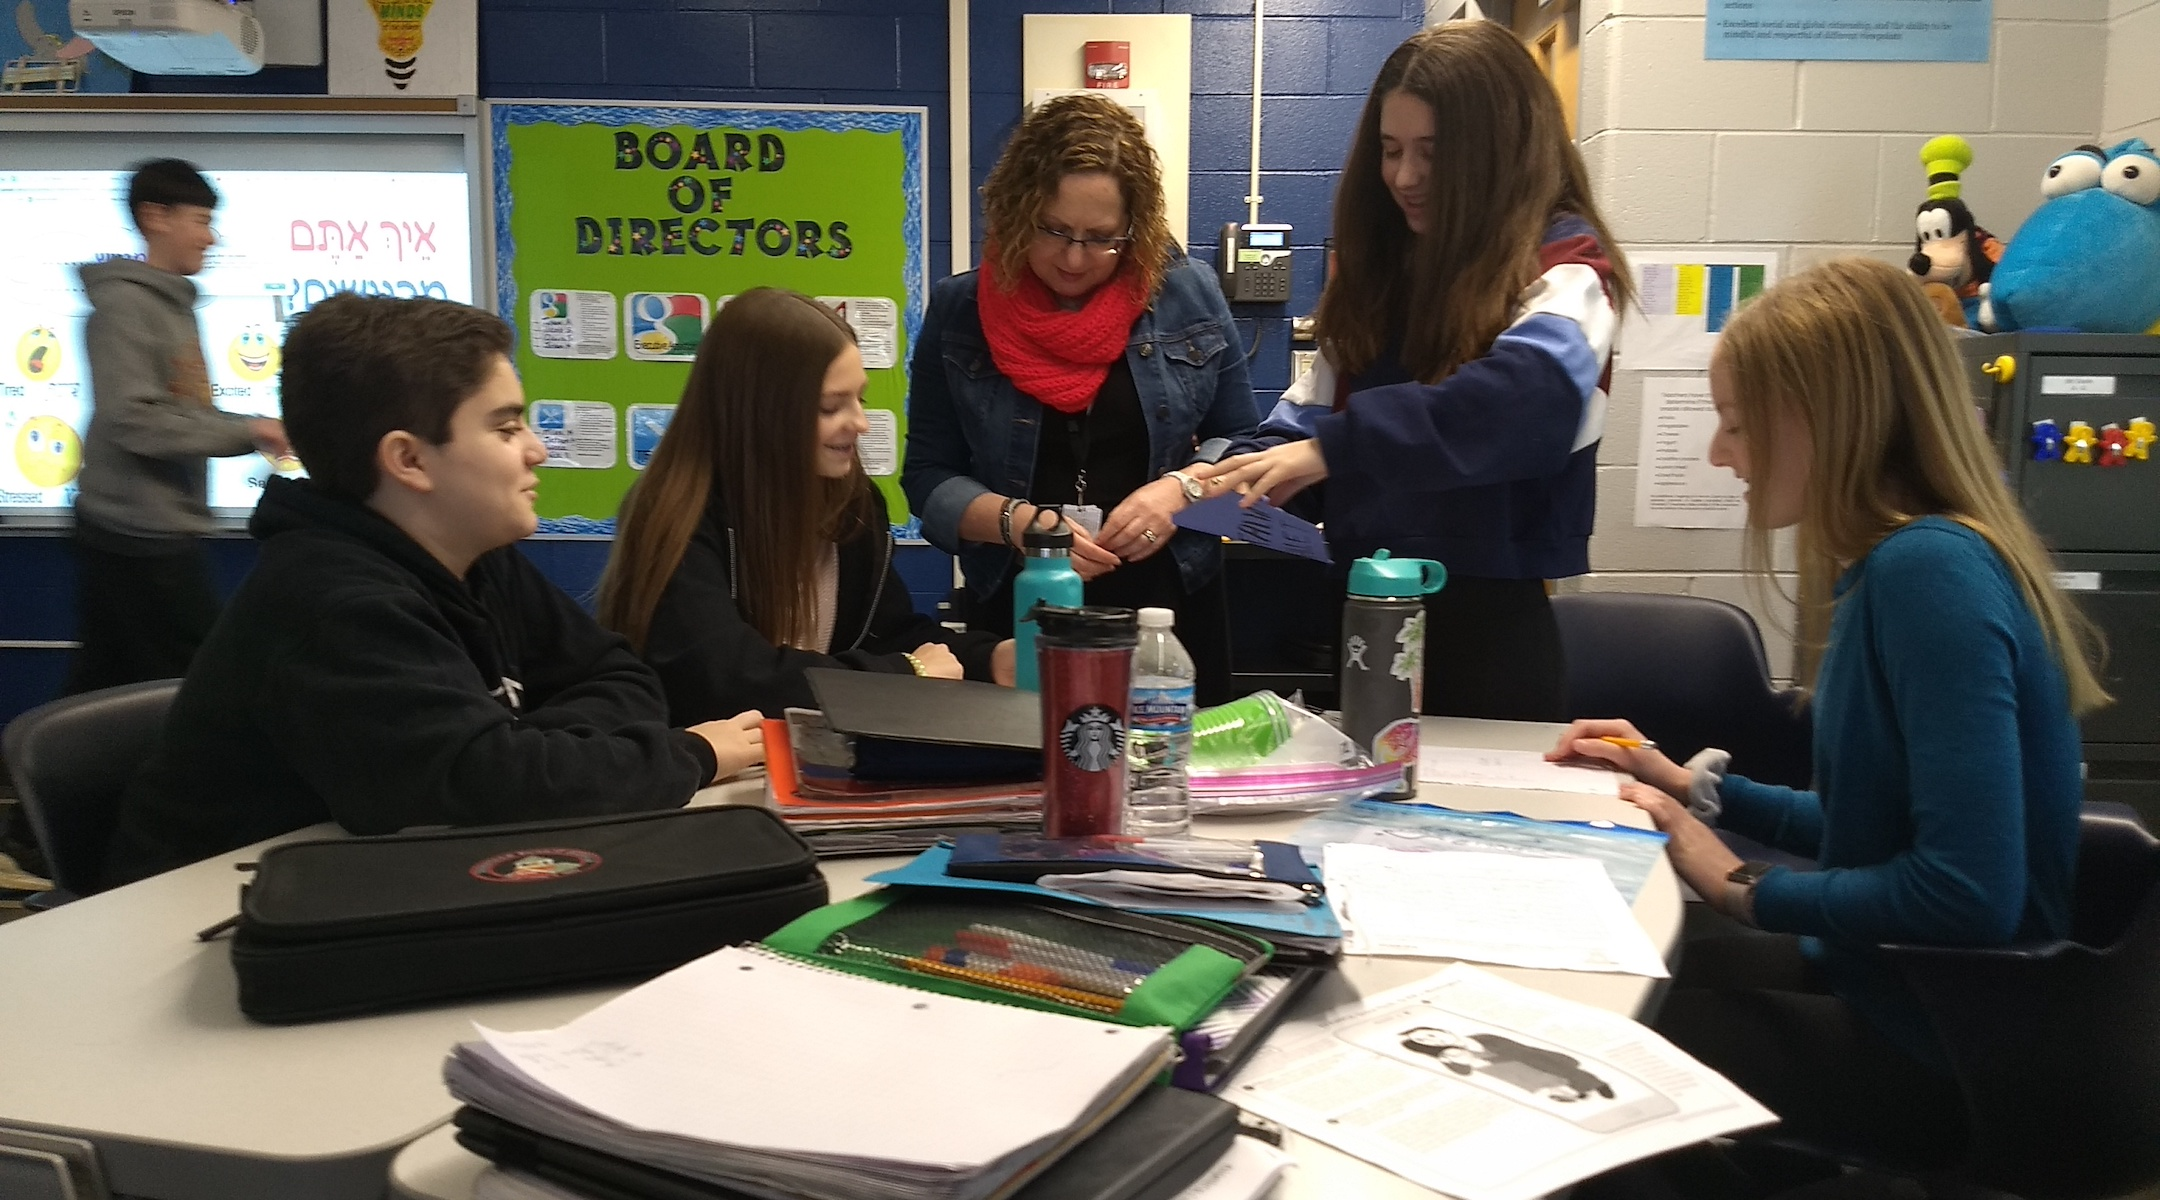 Teacher Osnat Lichtfeneld (center) guides students in an 8th grade Hebrew class at Alan B. Shepard Middle School in Deerfield, Ill. on Dec. 13. (Ben Sales)